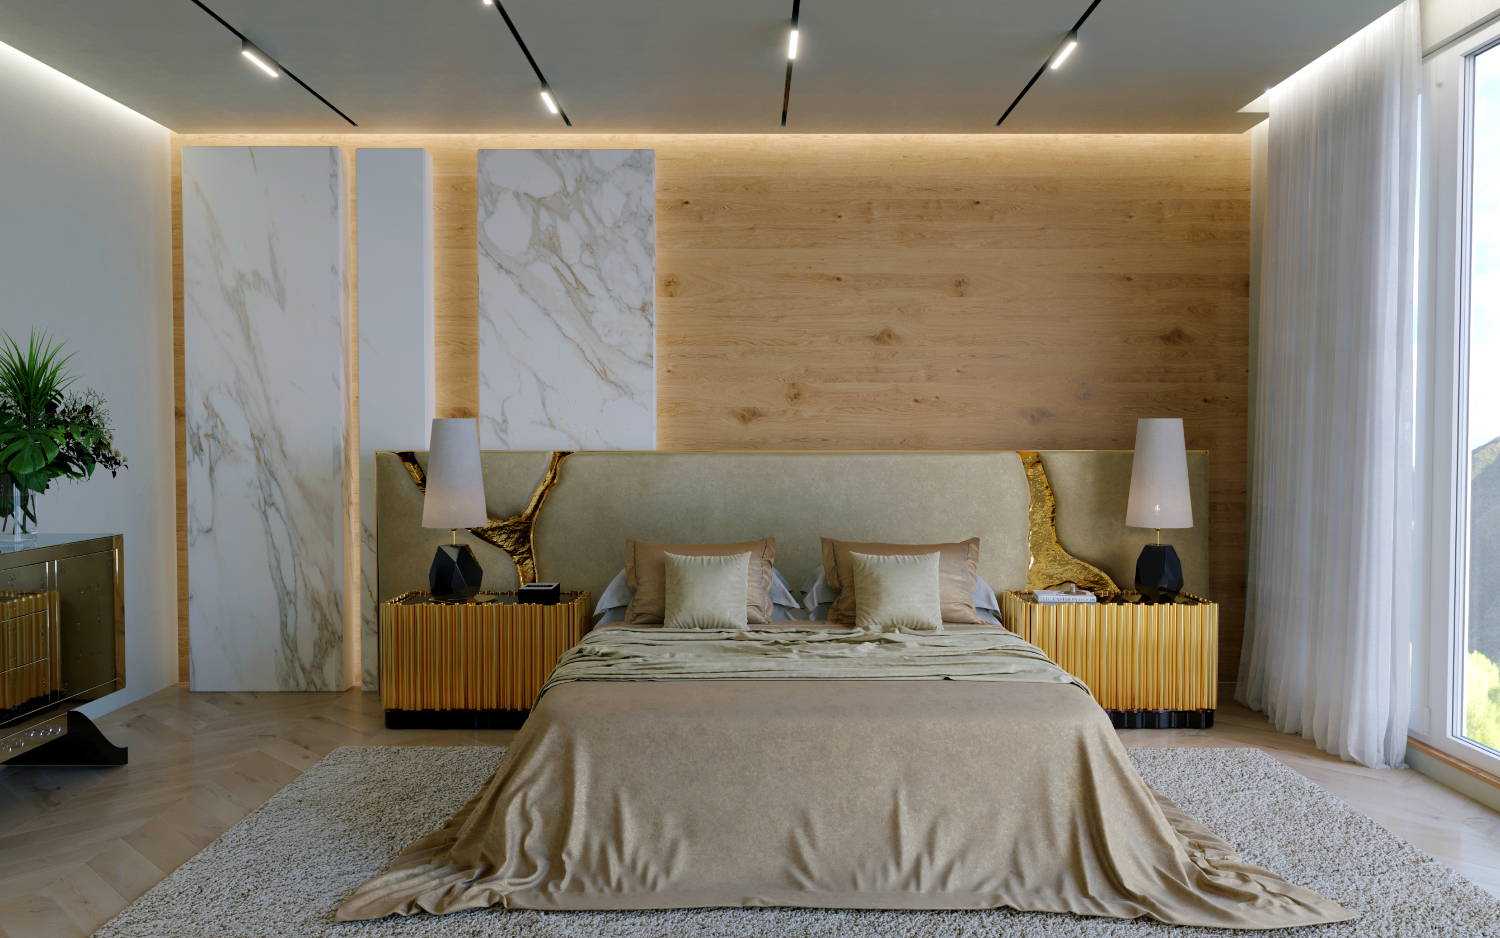 A Luxury Furniture Brand Just Launched Their First Modern Headboard